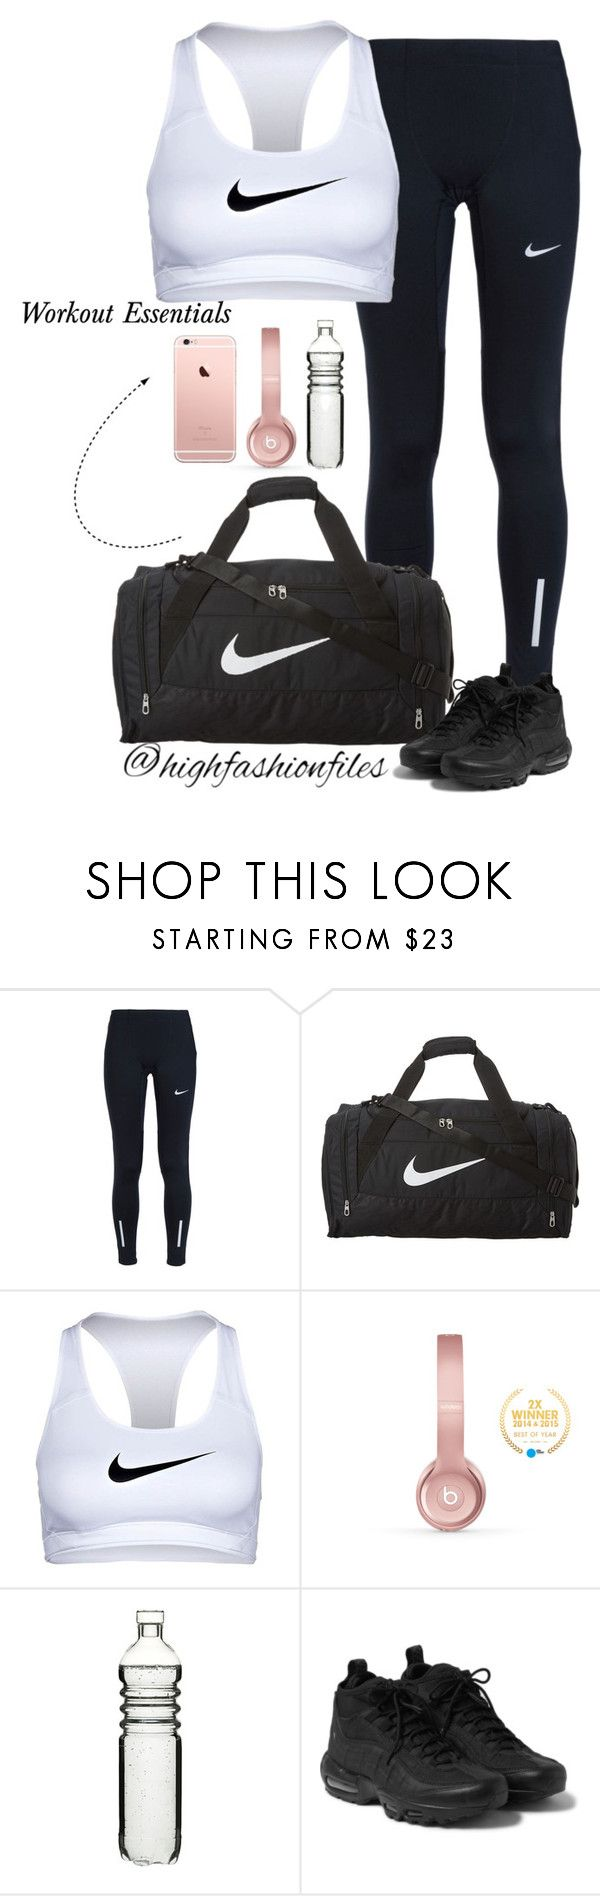 """""""Workout Essentials"""" by highfashionfiles ❤ liked on Polyvore featuring NIKE, Beats by Dr. Dre and Dot & Bo"""